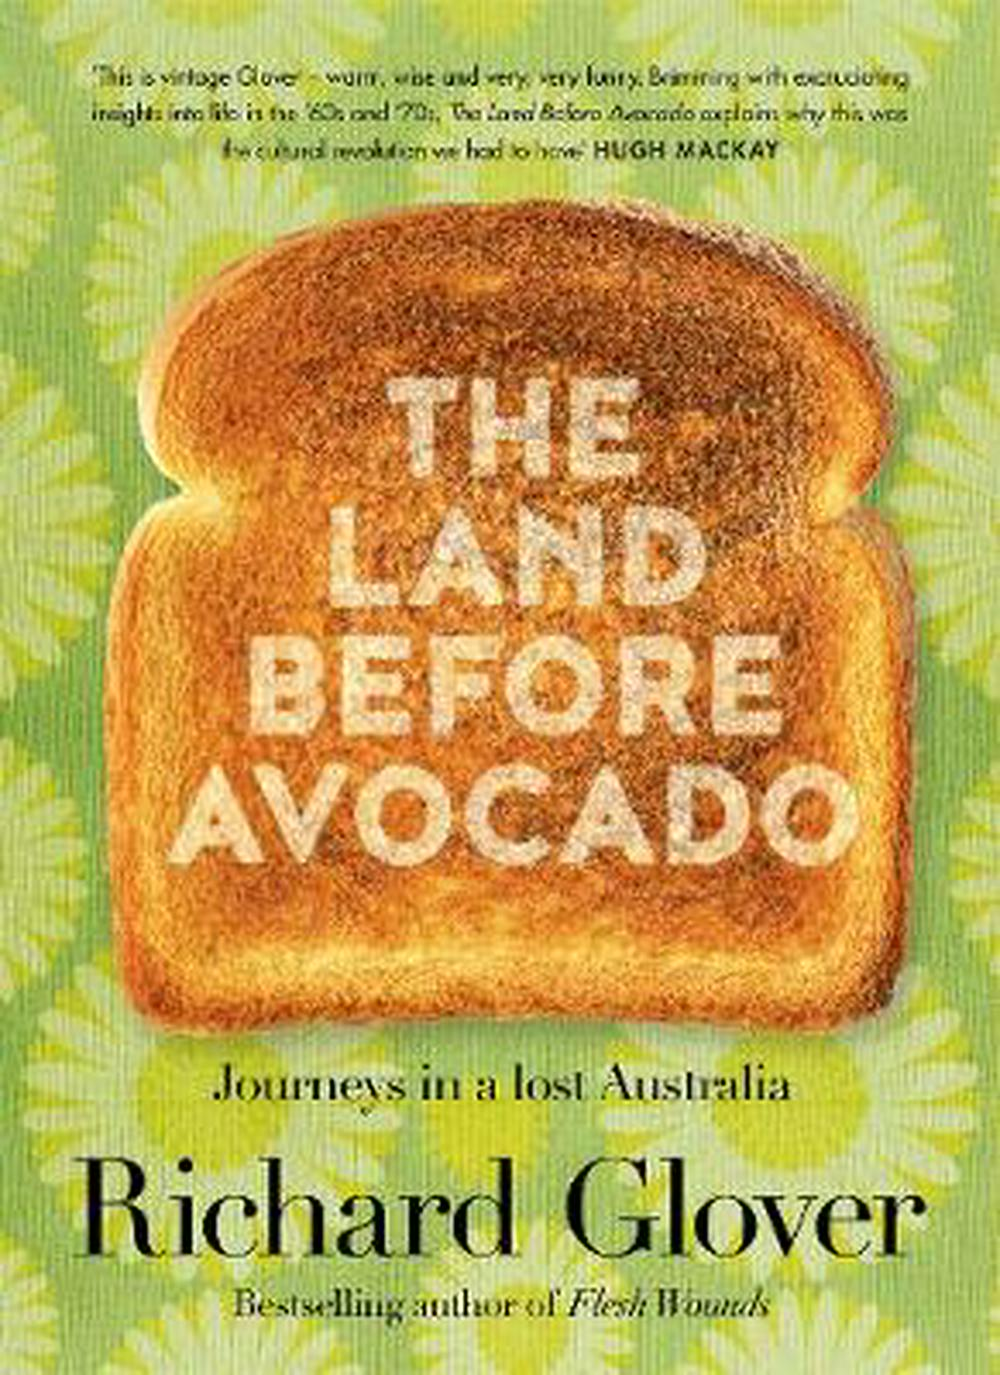 The Land Before Avocado by Richard Glover, ISBN: 9780733339813